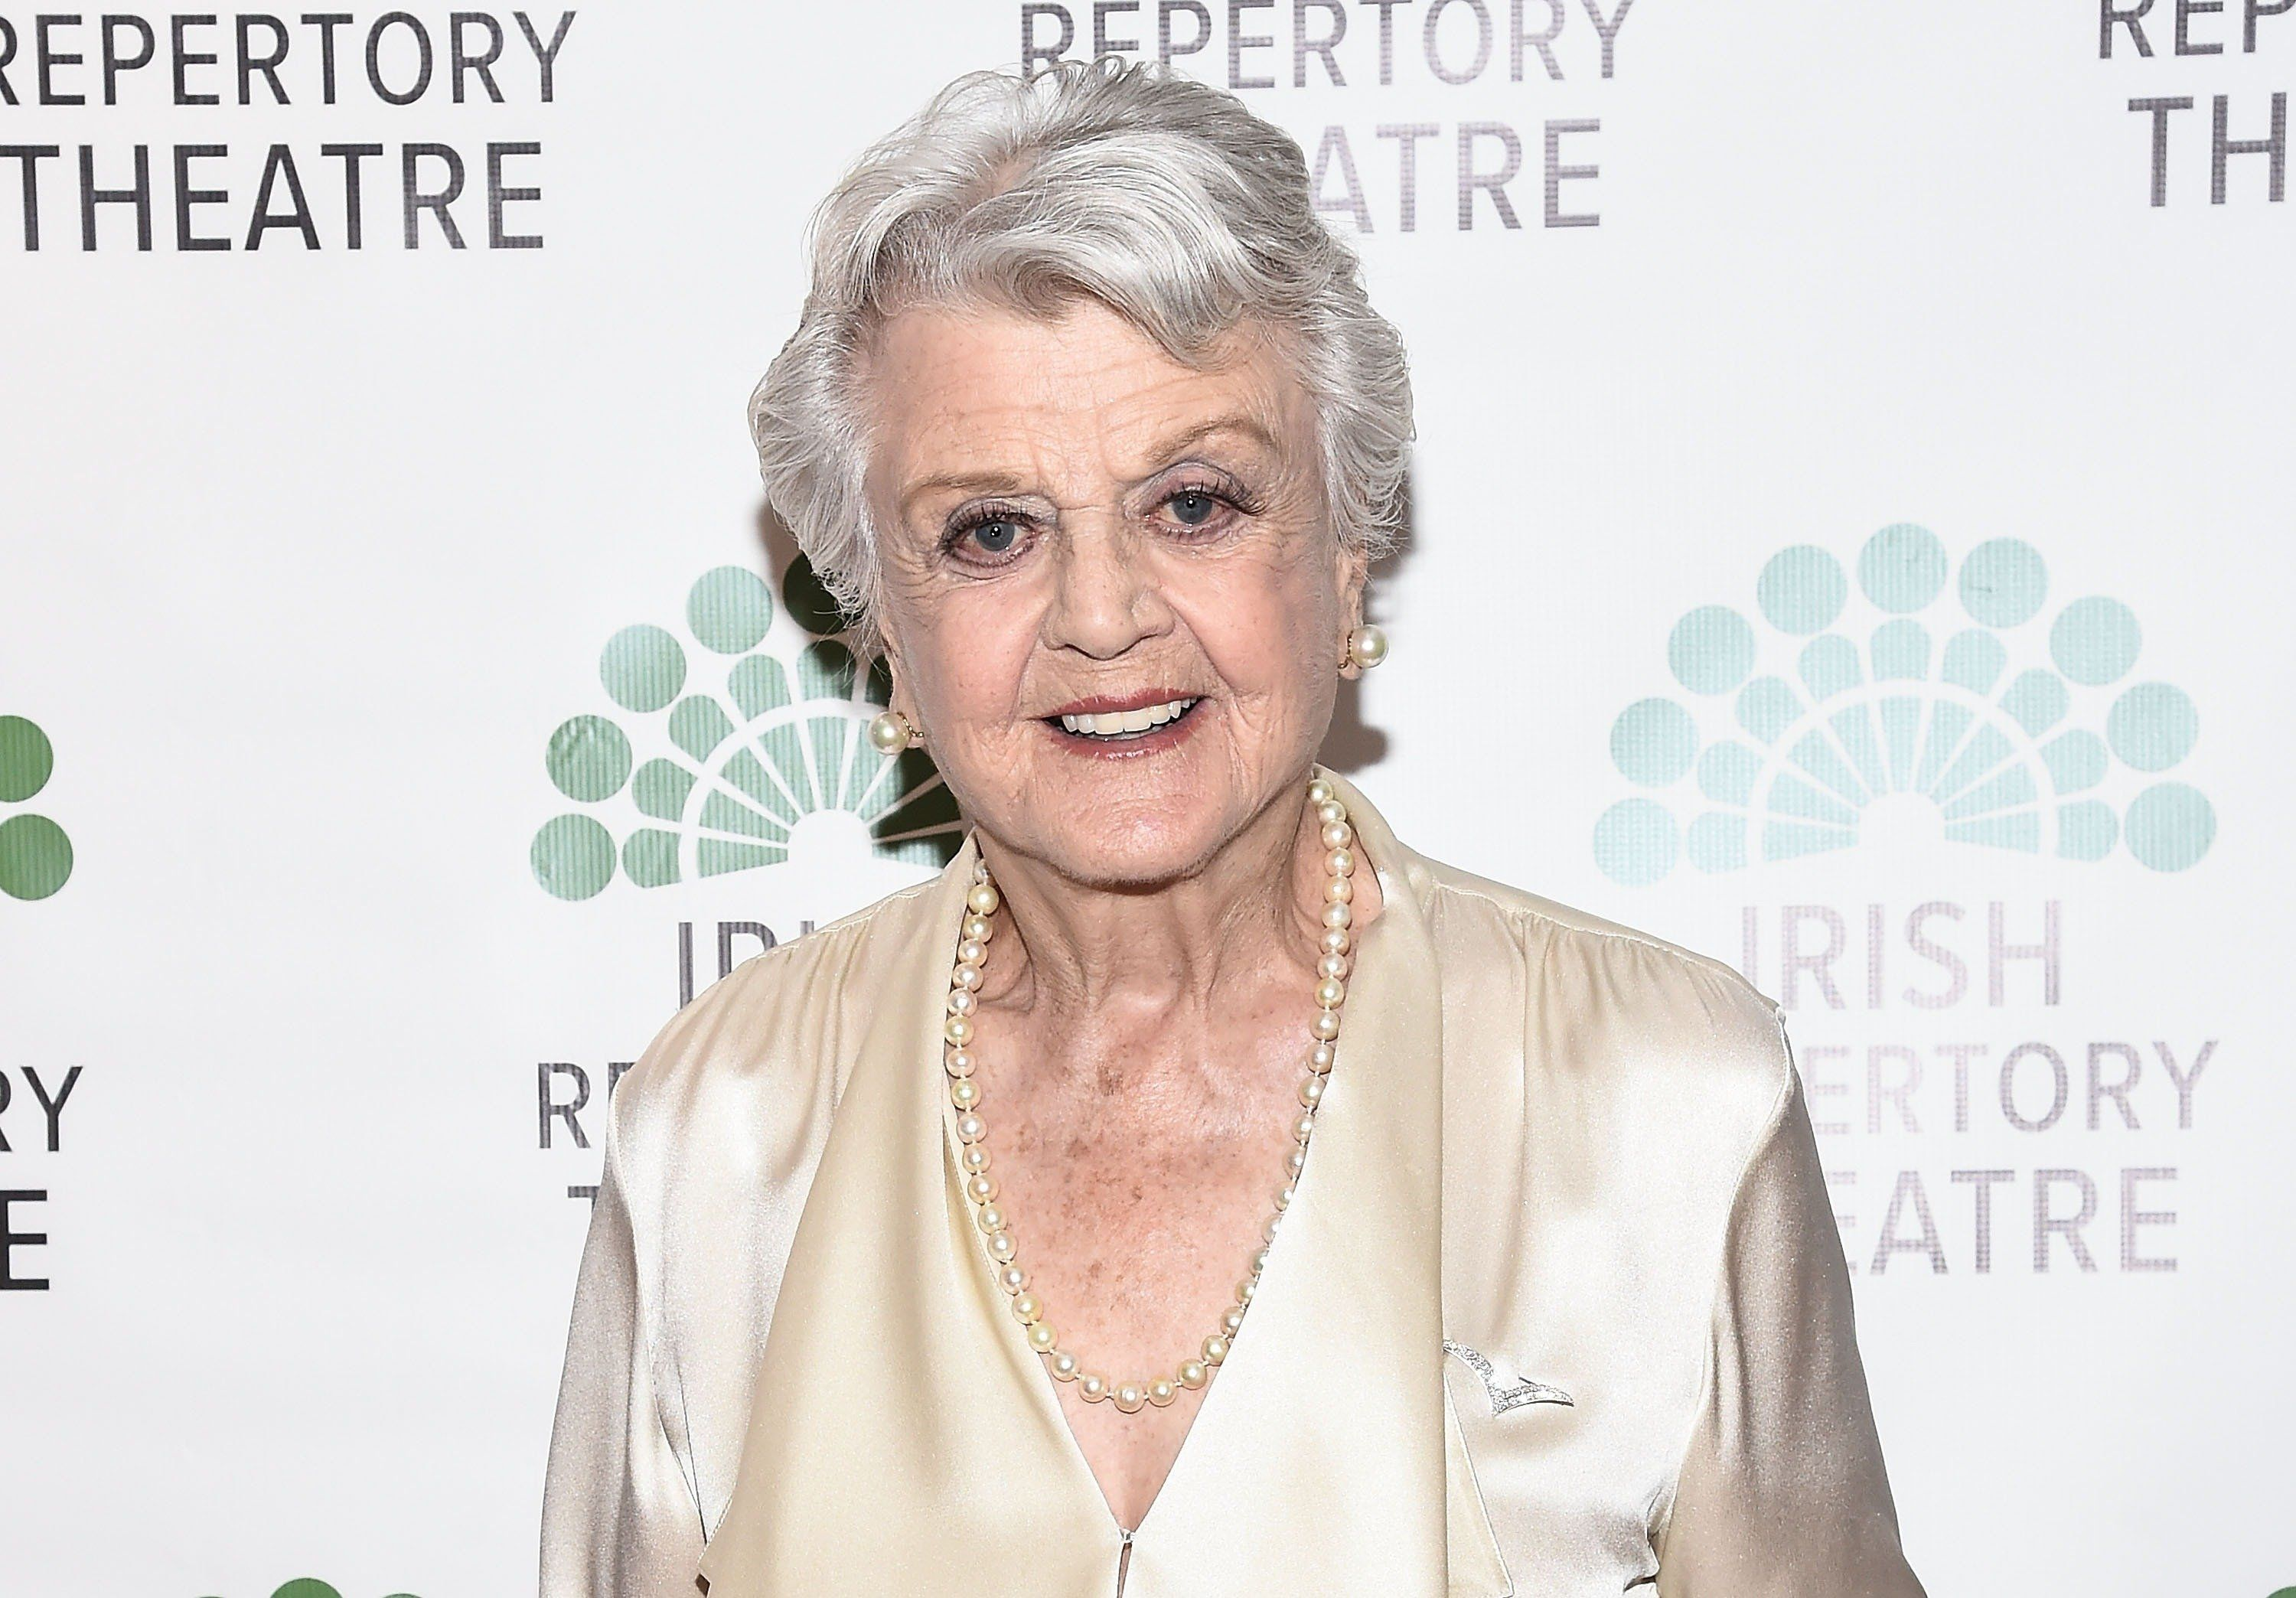 NEW YORK, NY - JUNE 13:  Angela Lansbury attends the 2017 Irish Repertory Theatre Gala at Town Hall on June 13, 2017 in New York City.  (Photo by Daniel Zuchnik/Getty Images)